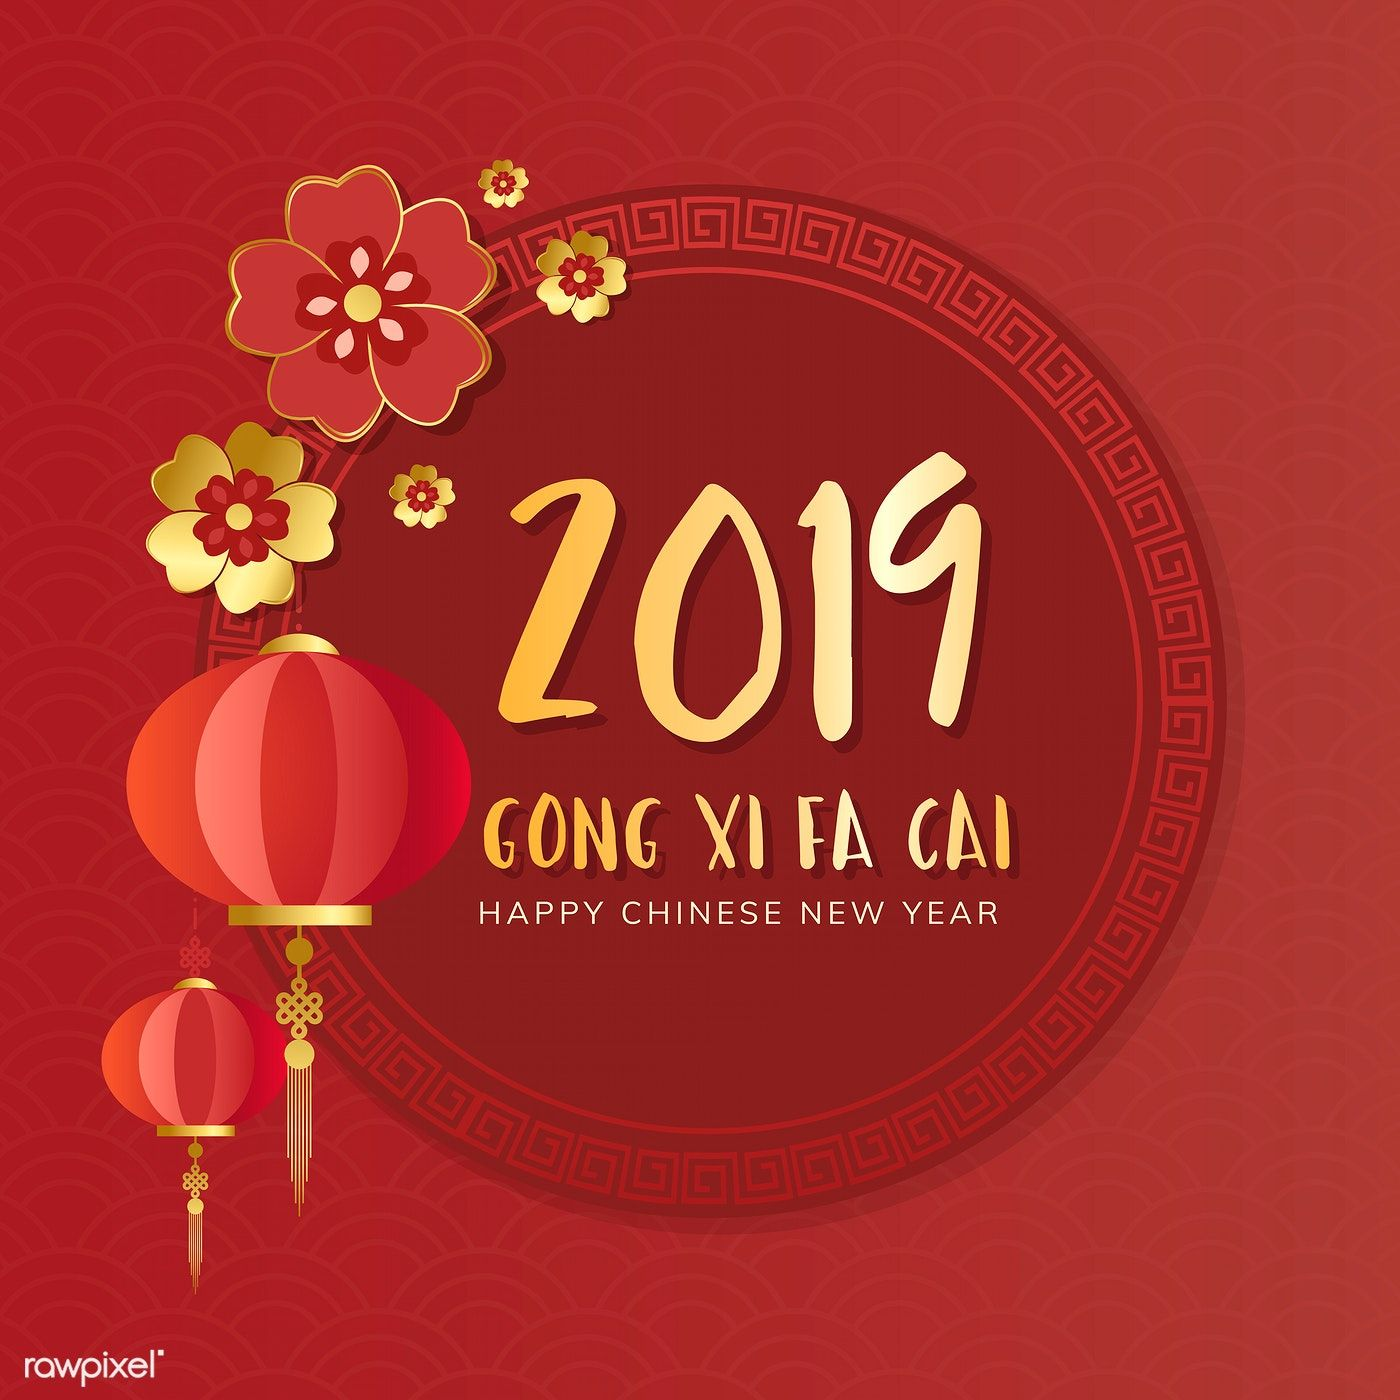 Chinese new year 2019 greeting banner free image by